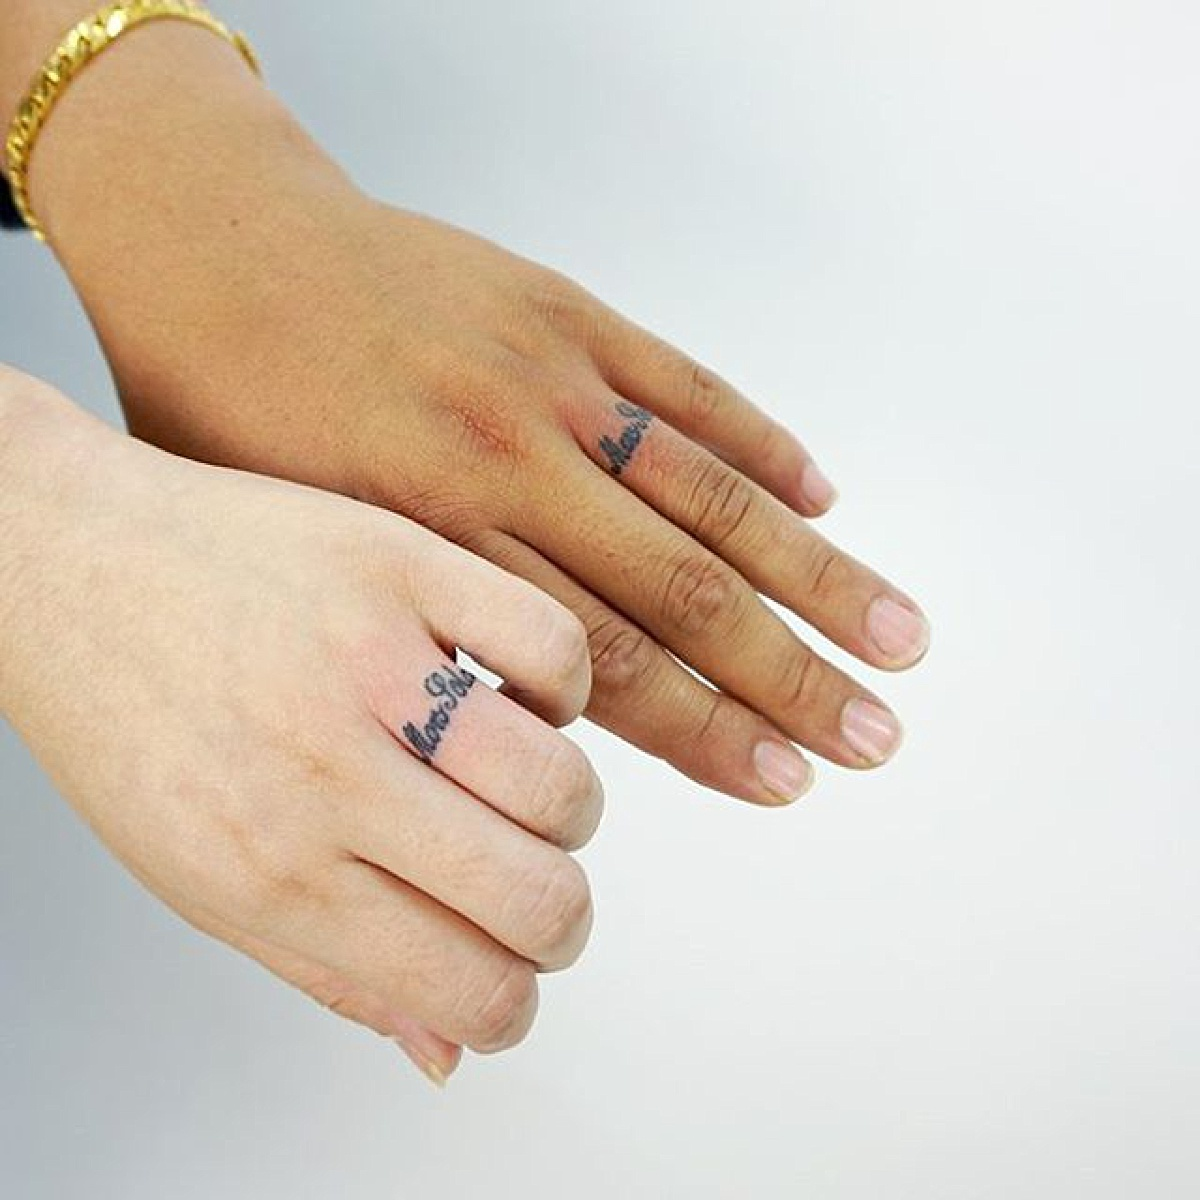 How To Do A Wedding Ceremony With The Tattoo Rings